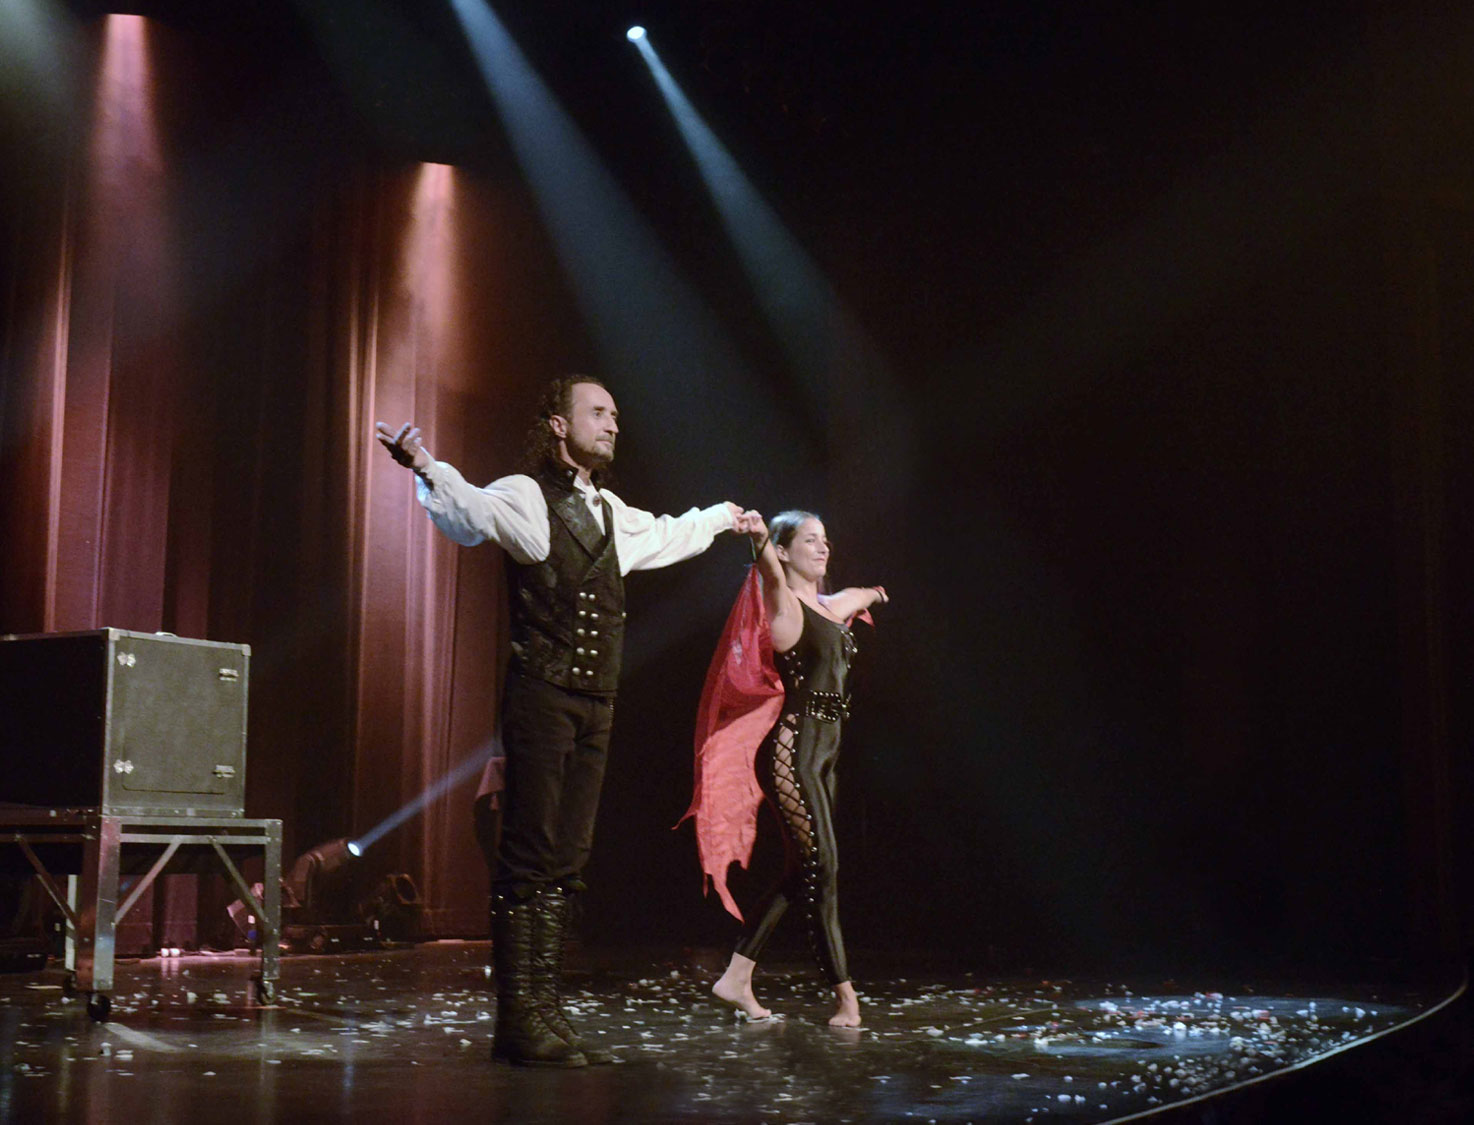 Loran magician illusionist on stage with Kristel